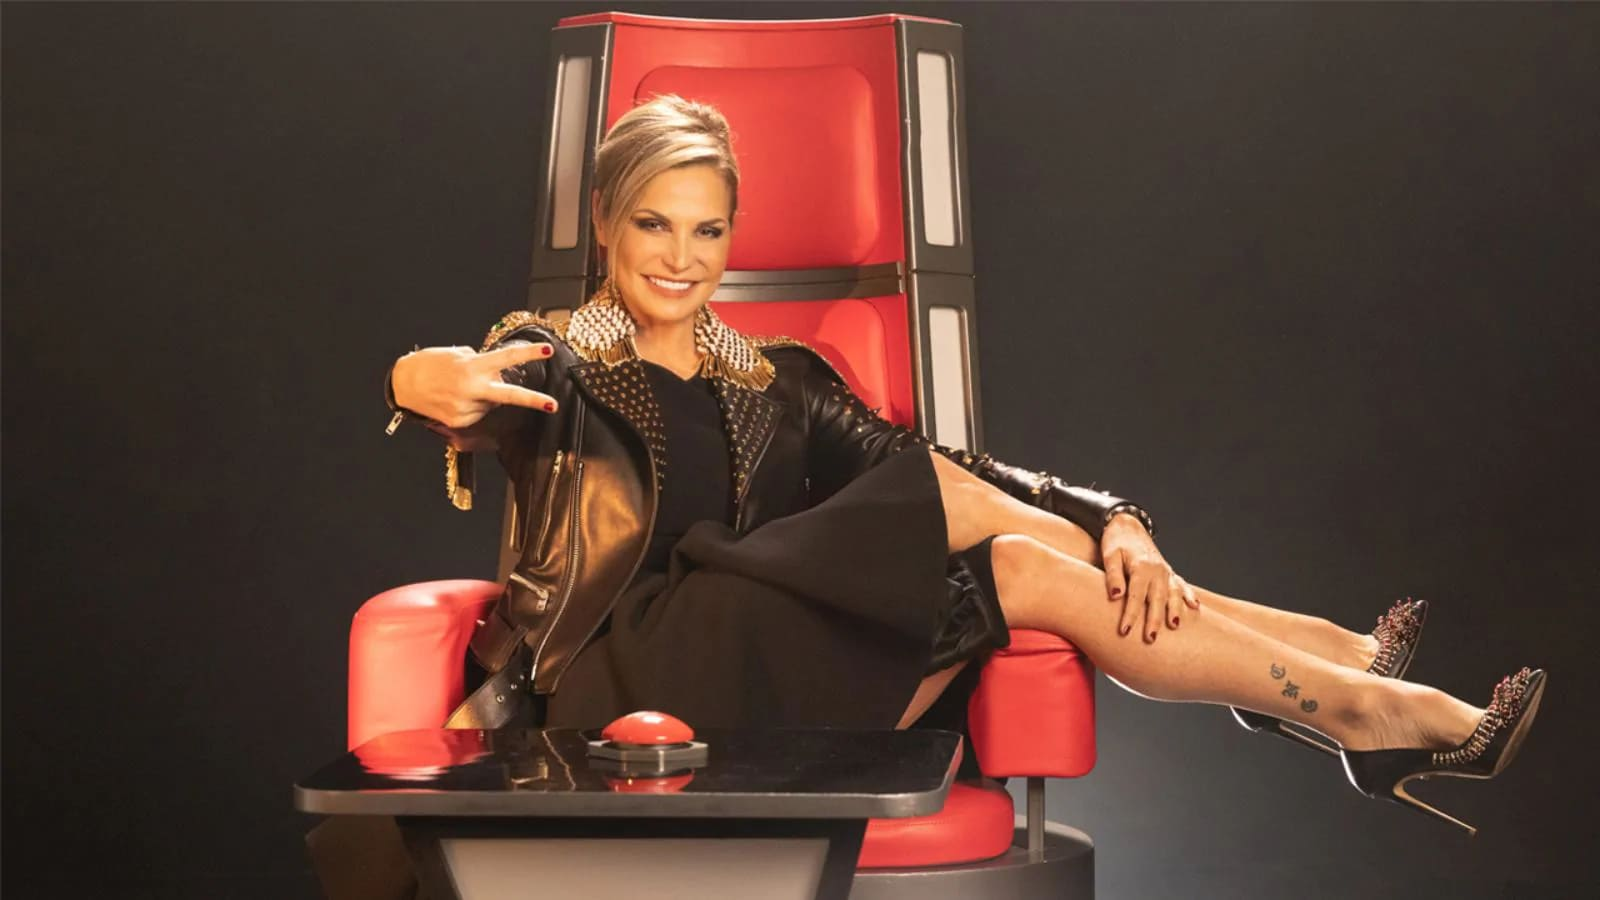 Stasera in tv The Voice of Italy con Simona Ventura